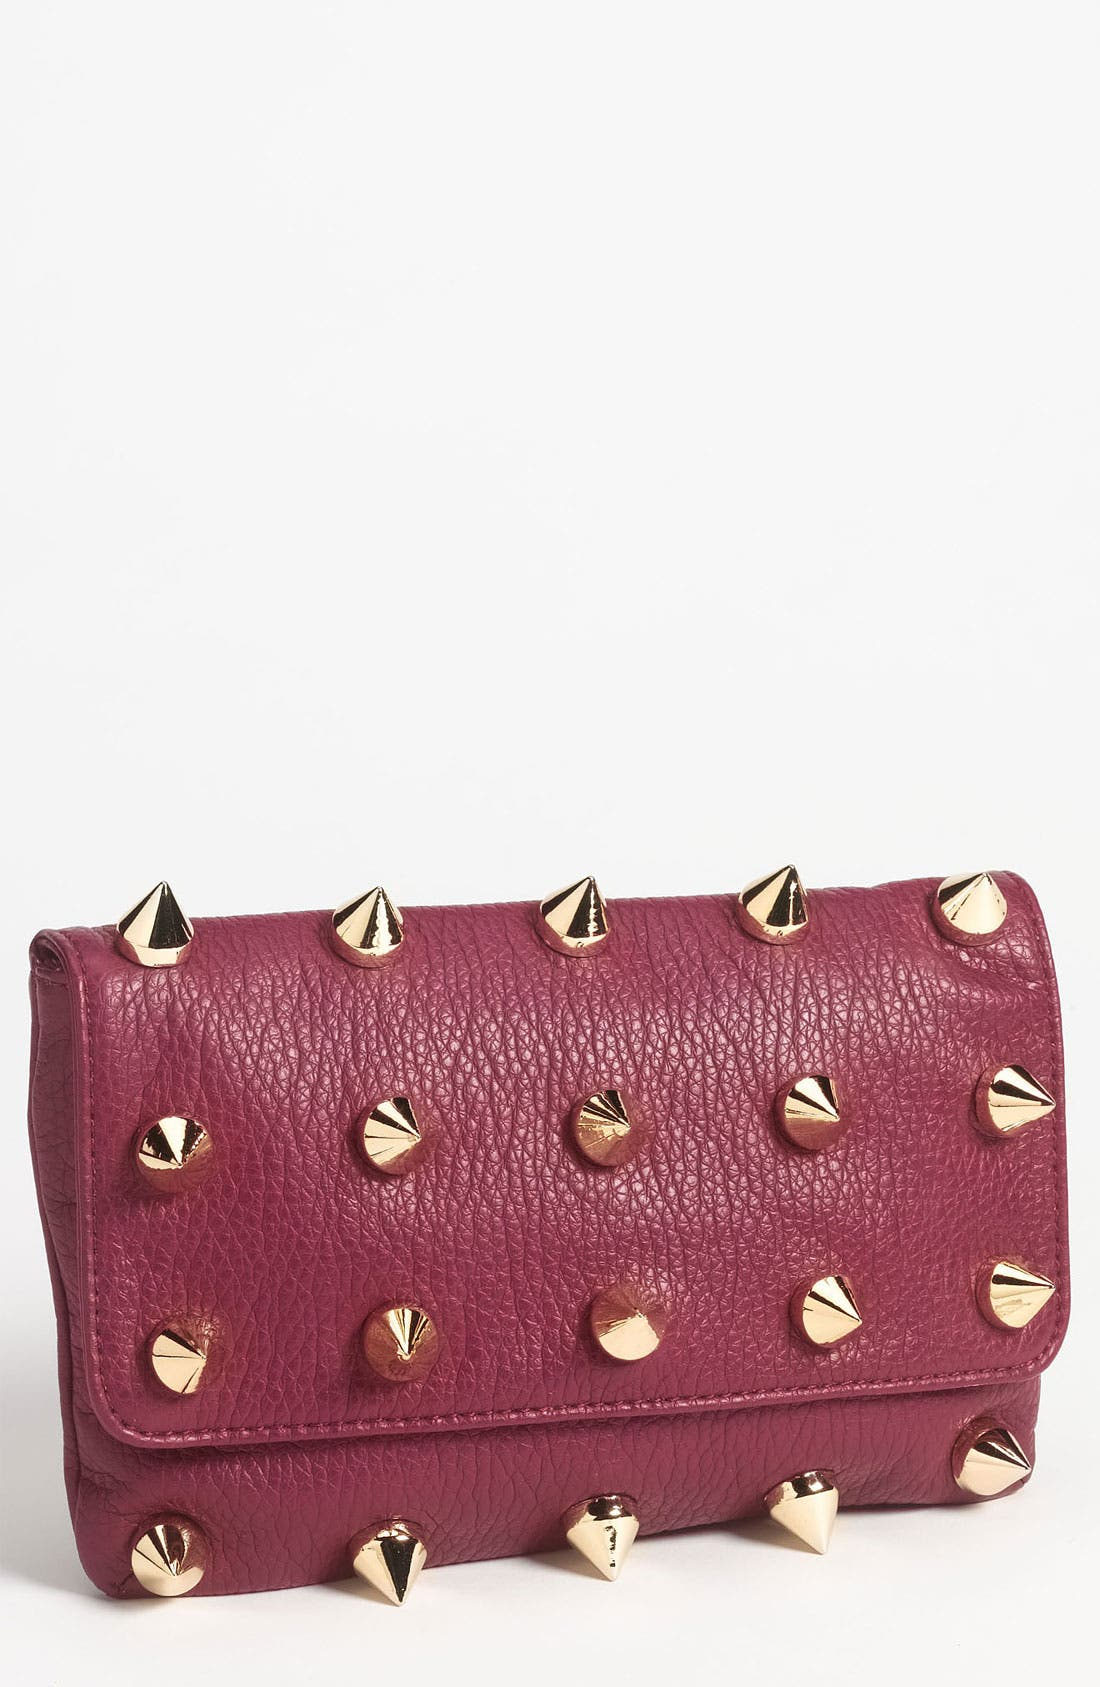 Alternate Image 1 Selected - Deux Lux 'Empire' Faux Leather Clutch